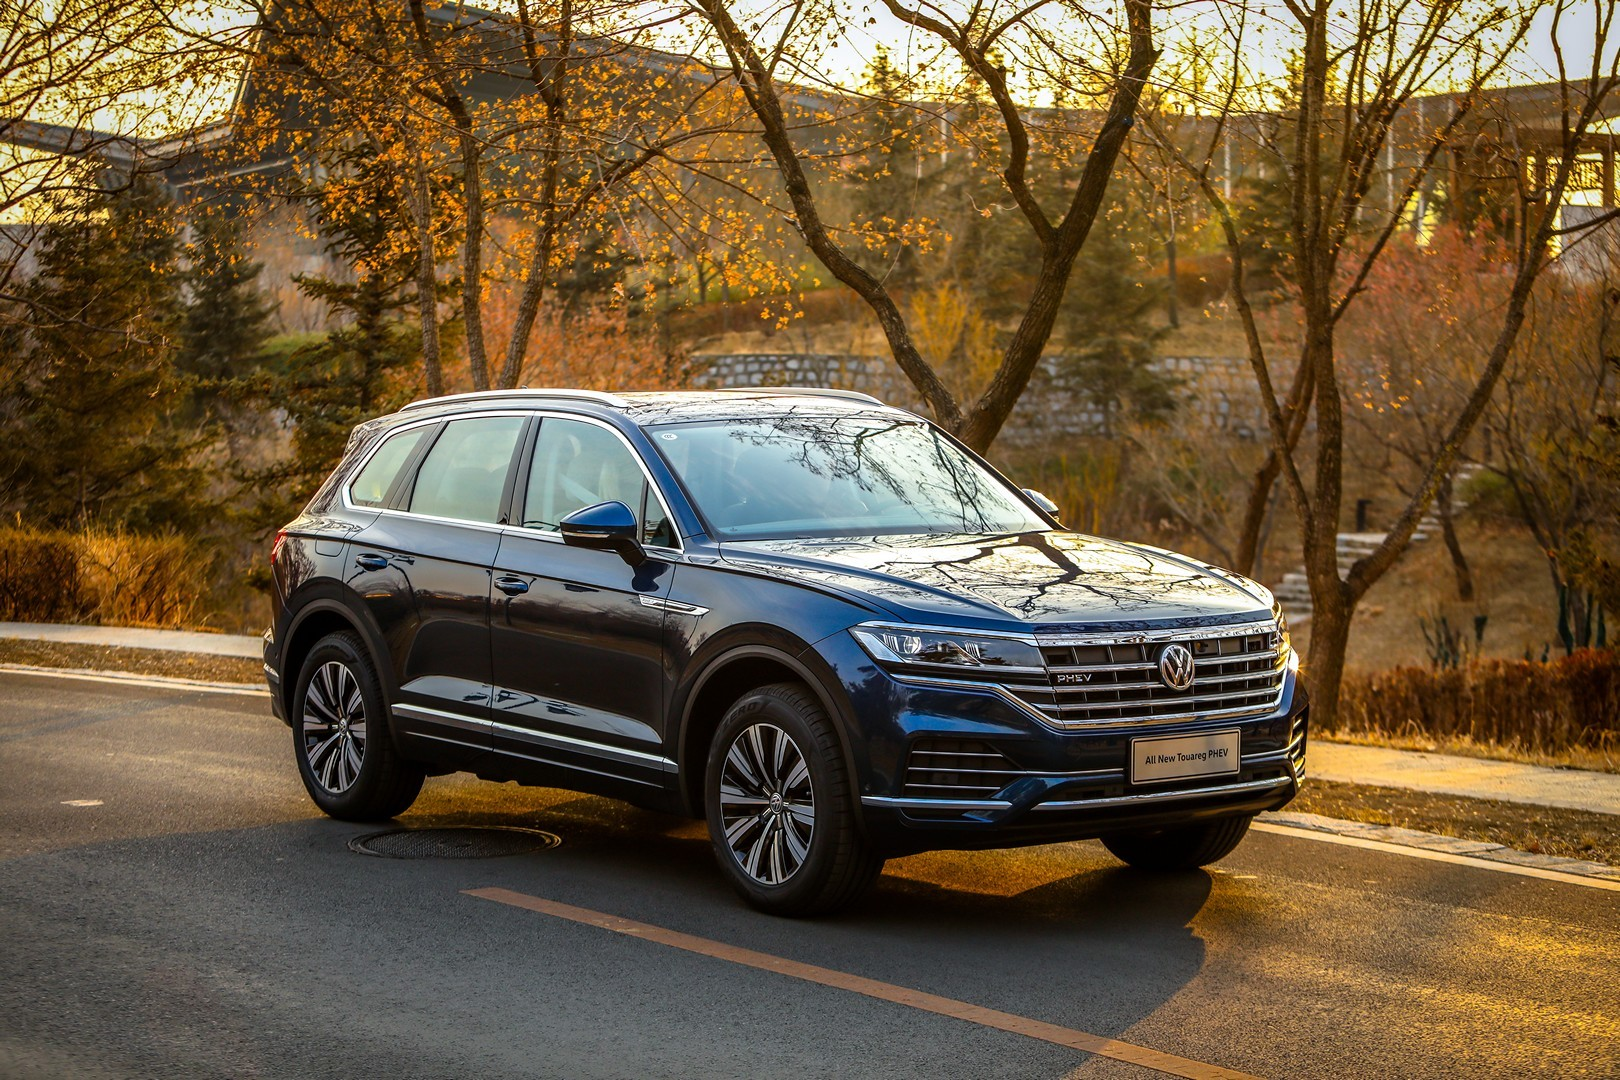 2019 VW Touareg UK Review Talks about Interior Quality, Slow